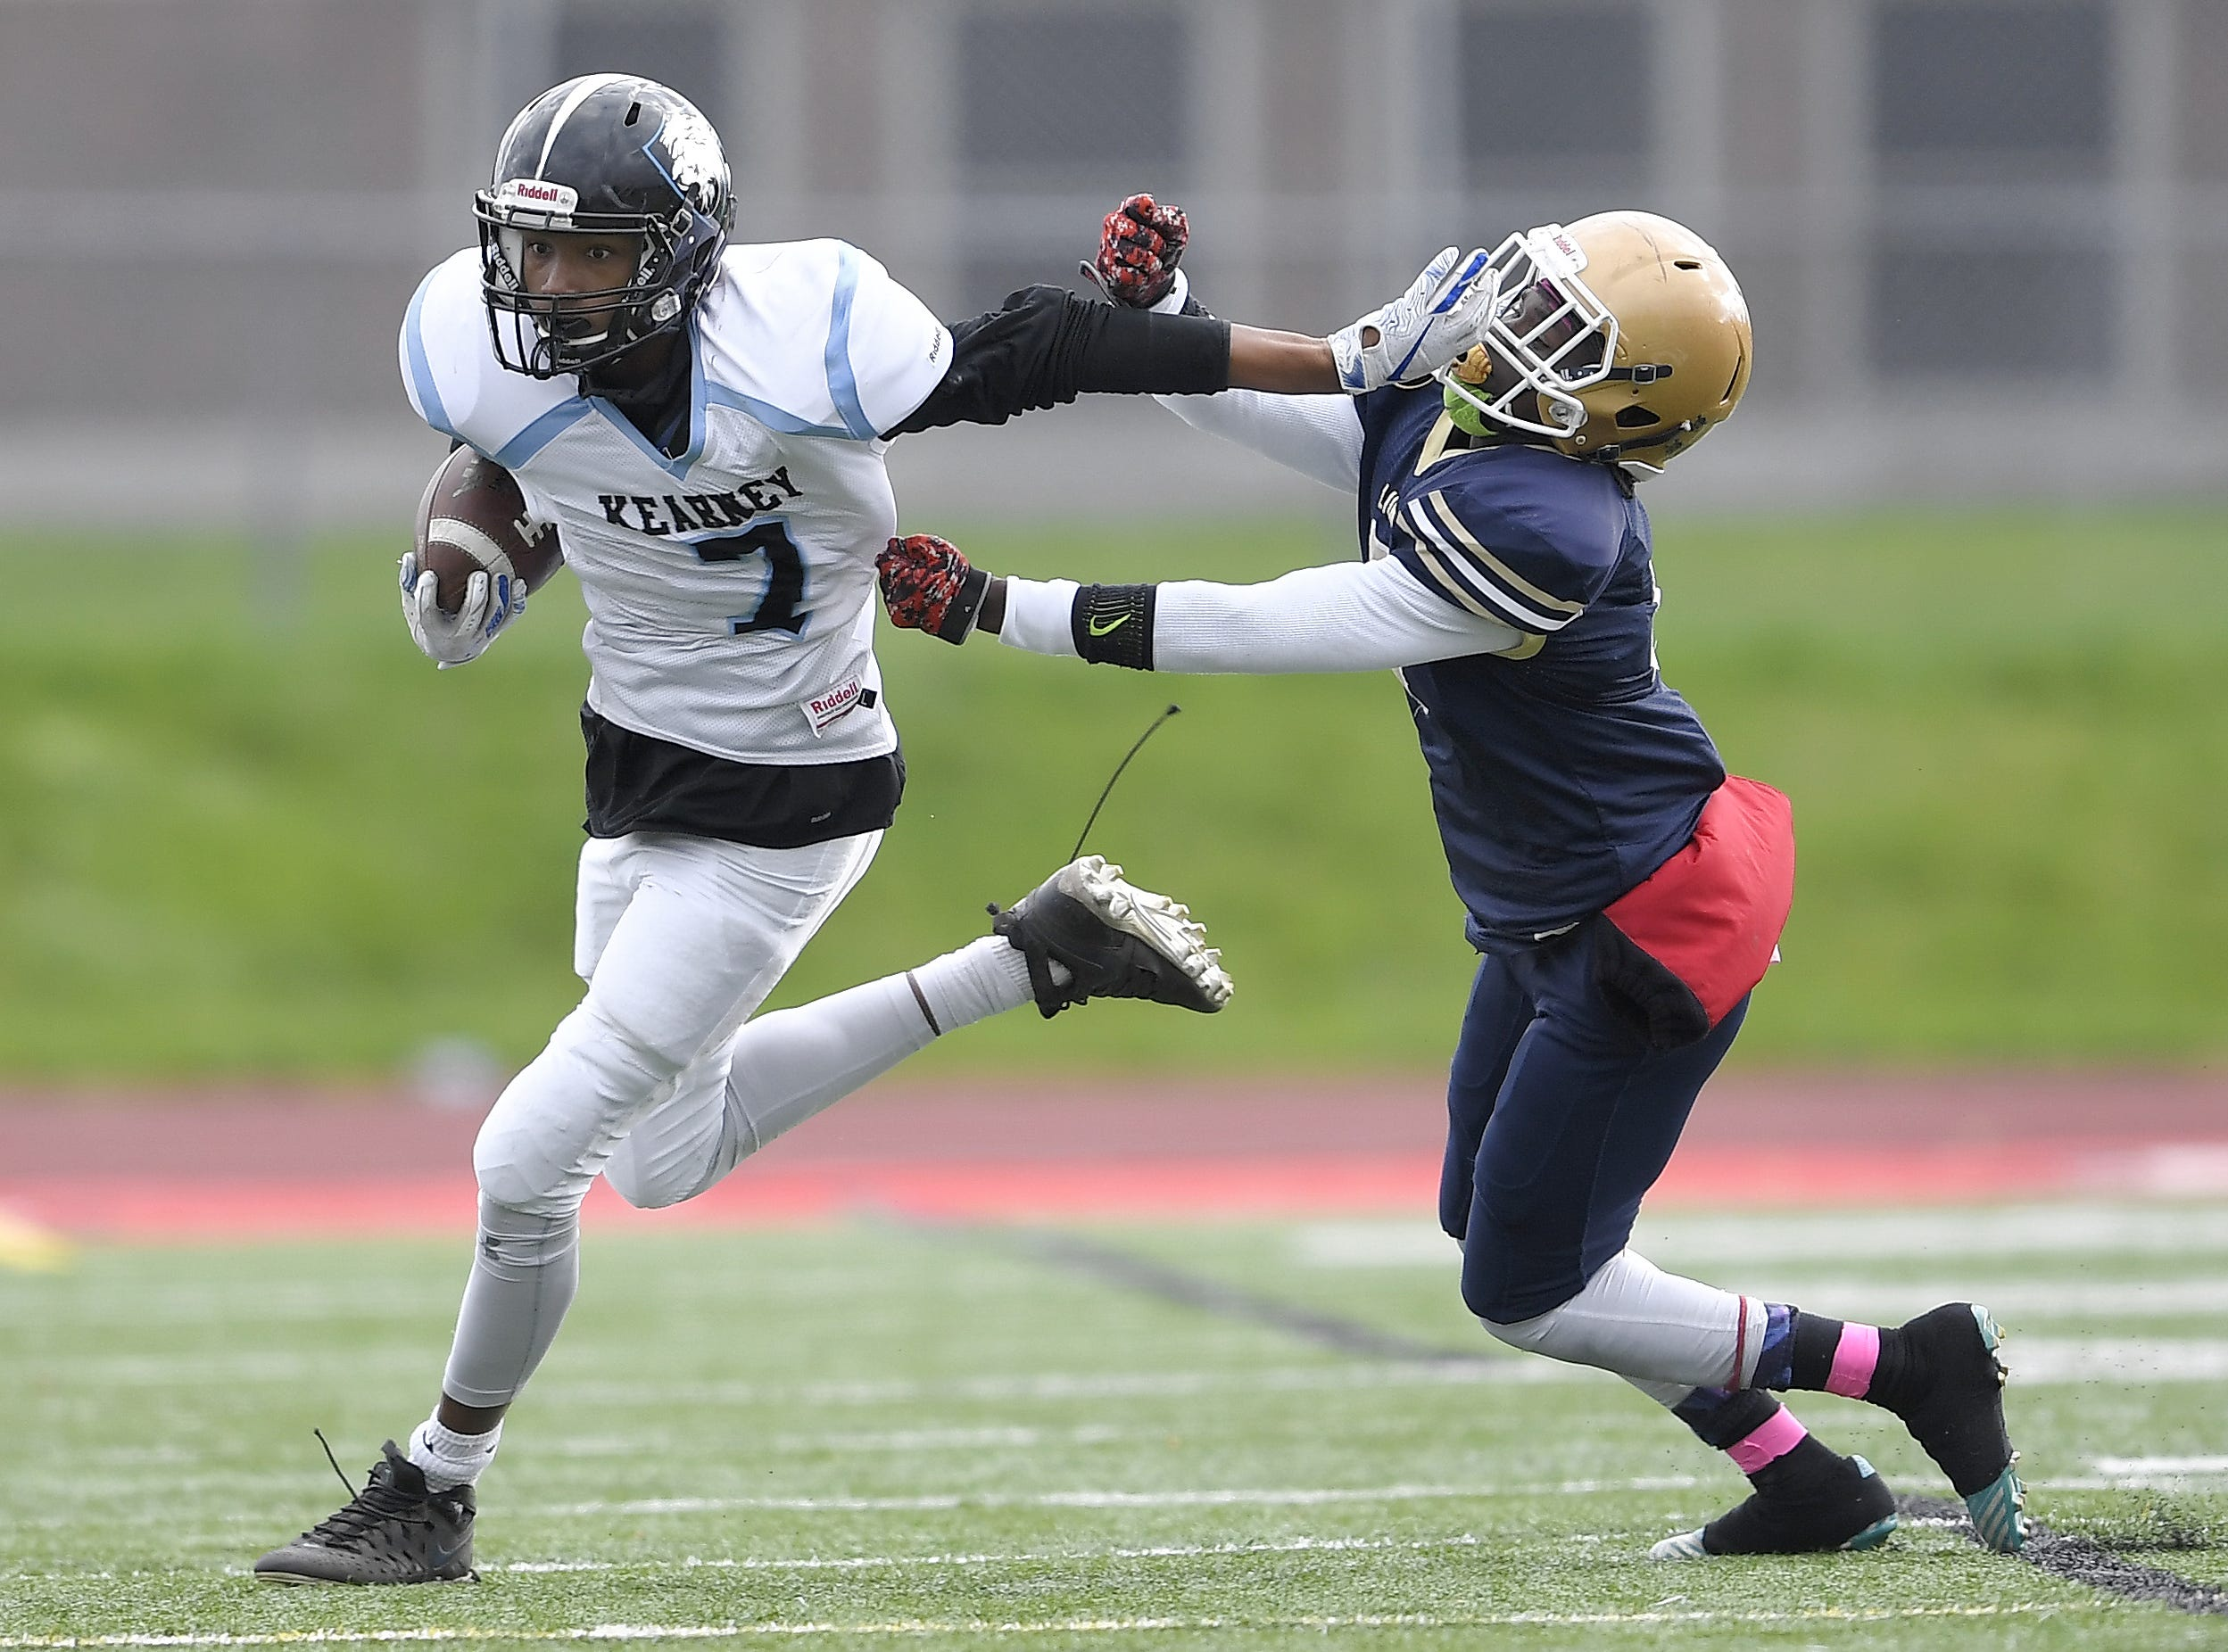 Bishop Kearney's Kidtrell Blocker, left, stiff arms Leadership's Jasun Beckford during a regular season game played at Franklin High School, Saturday, Oct. 13, 2018. Leadership Academy beat Bishop Kearney/Rochester Prep 12-6.